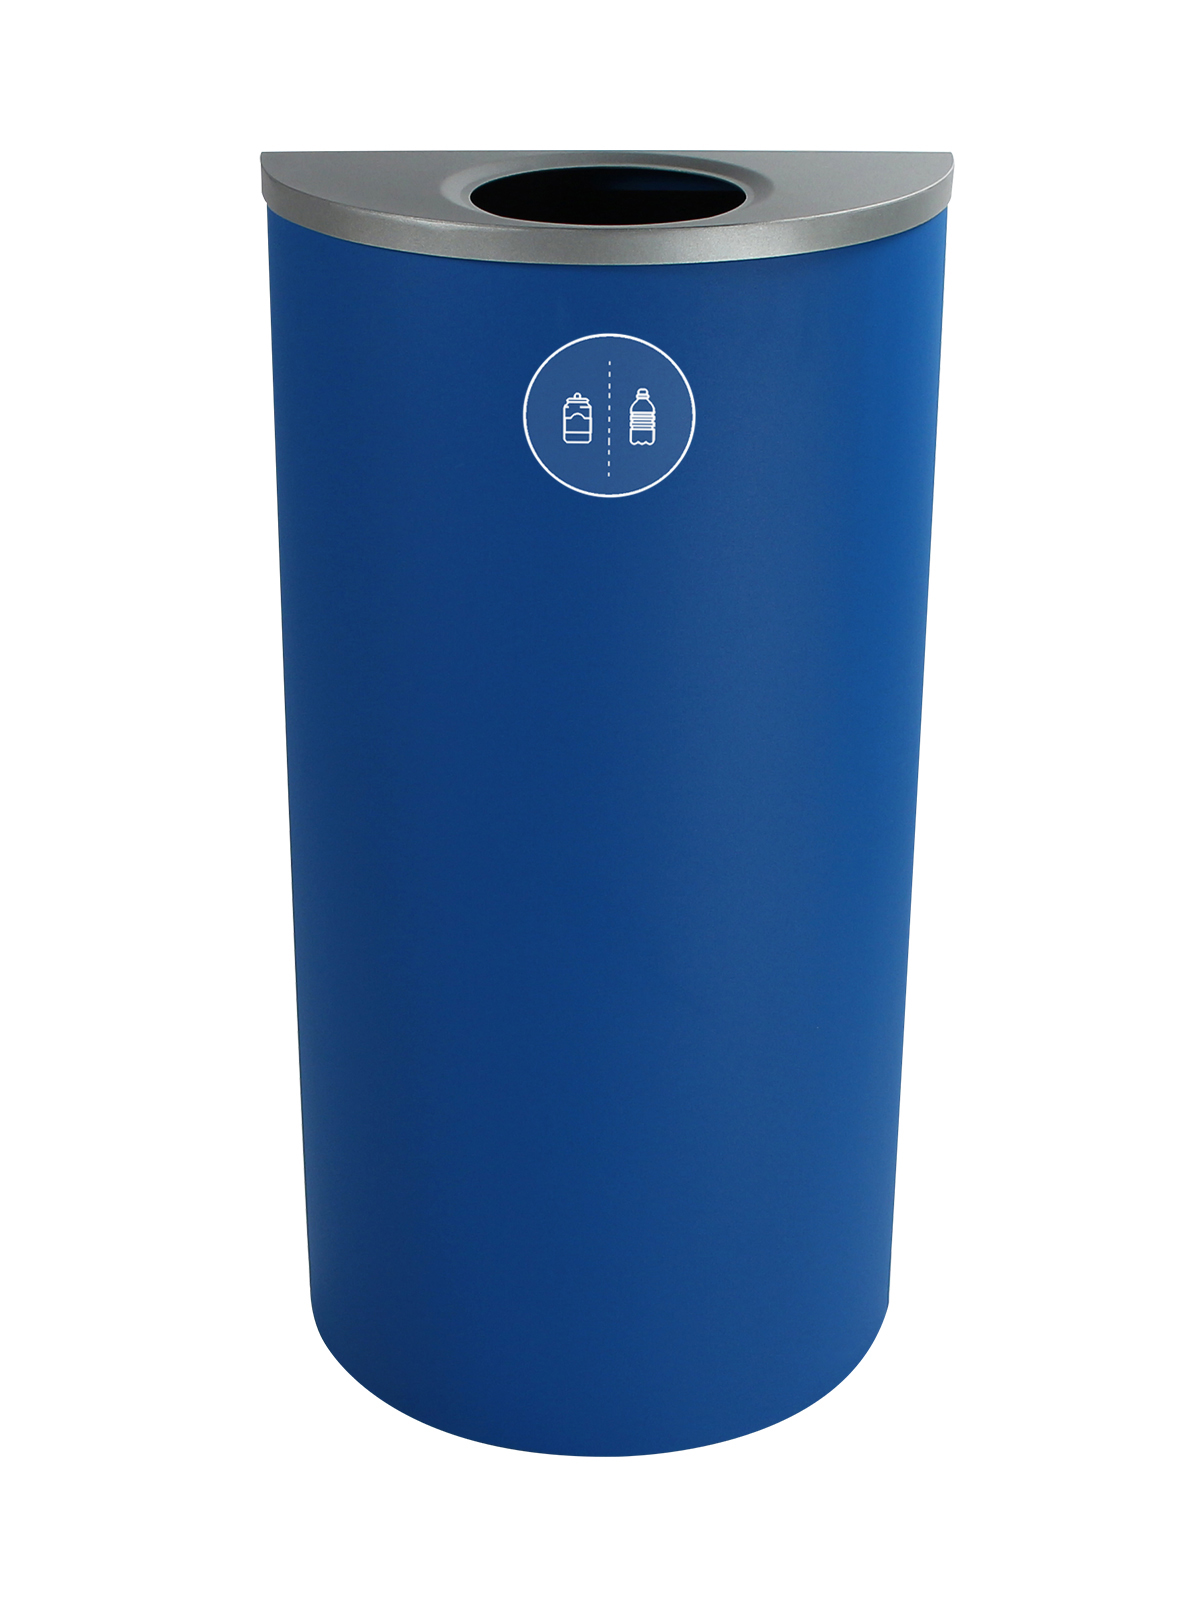 SPECTRUM - Single - Ellipse Slim - Cans & Bottles - Circle - Blue